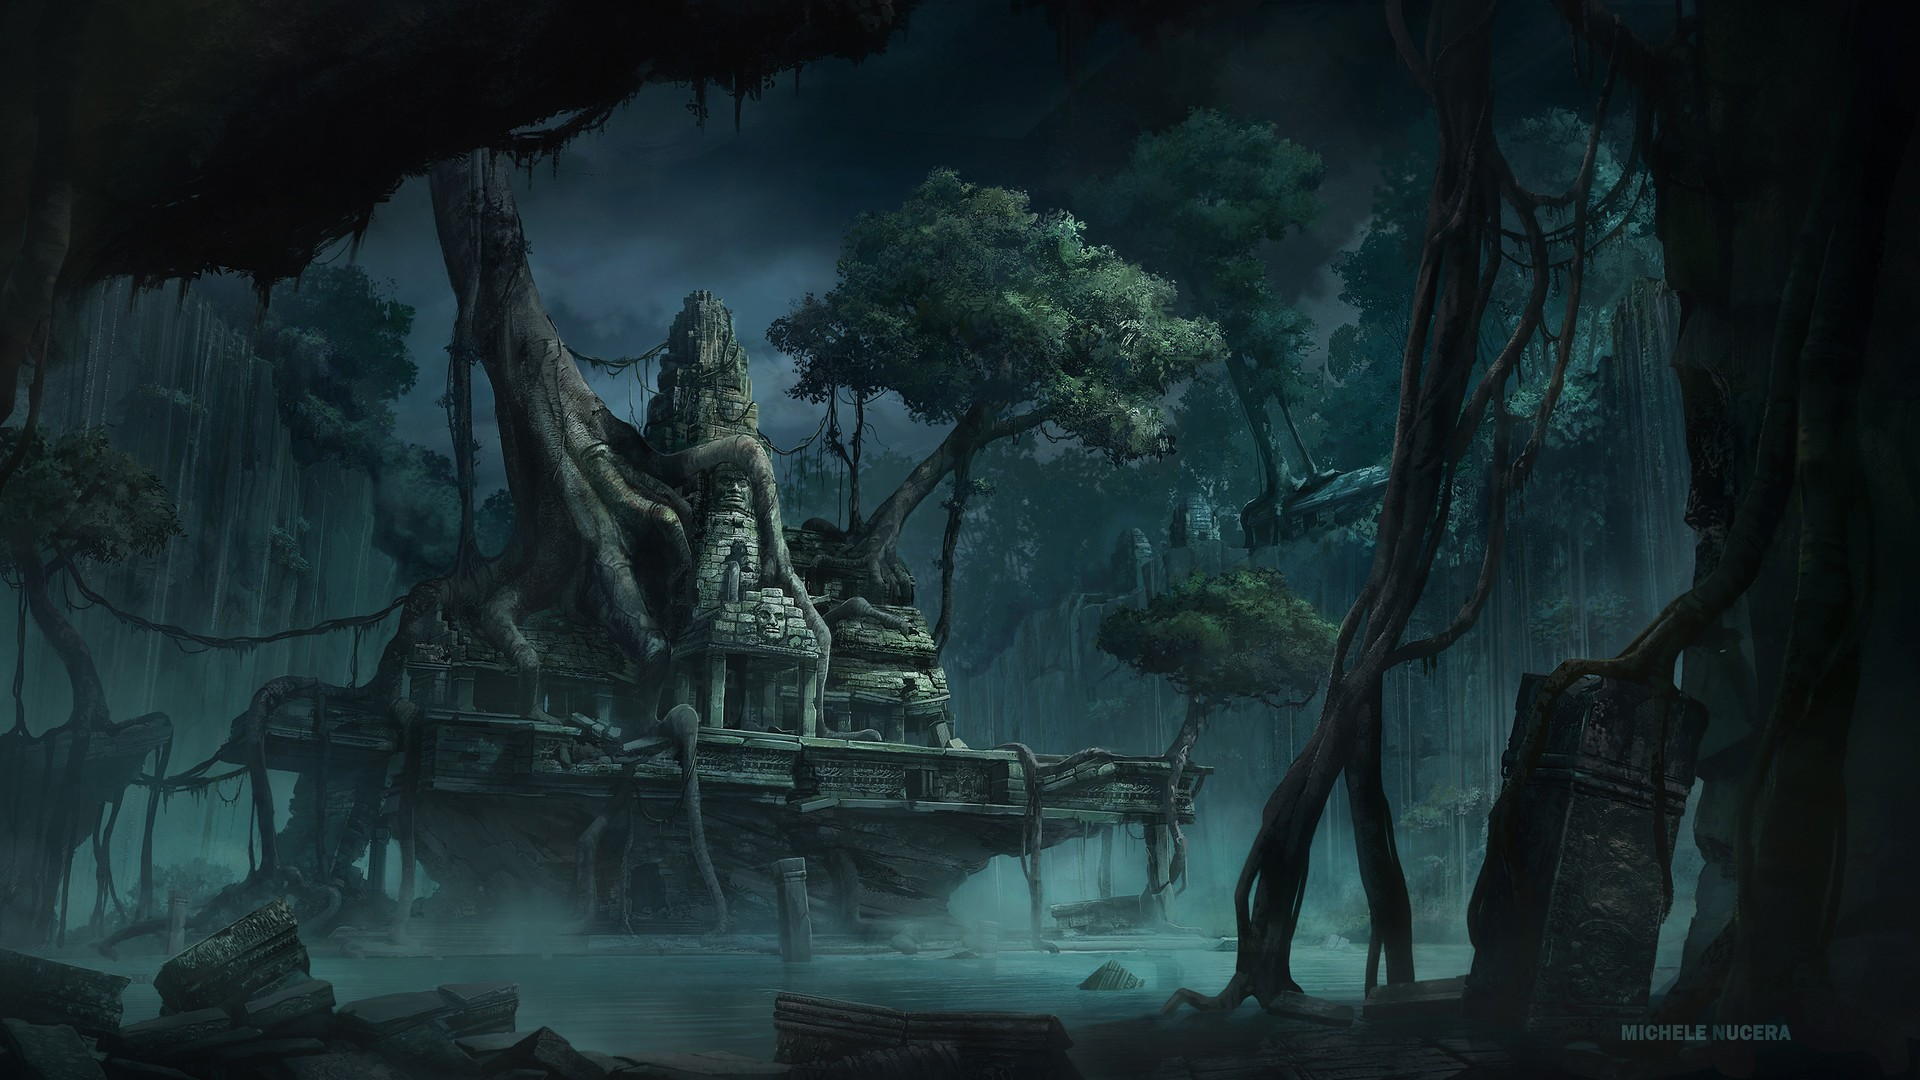 Michele nucera temple jungle fantasy art wallpapers hd